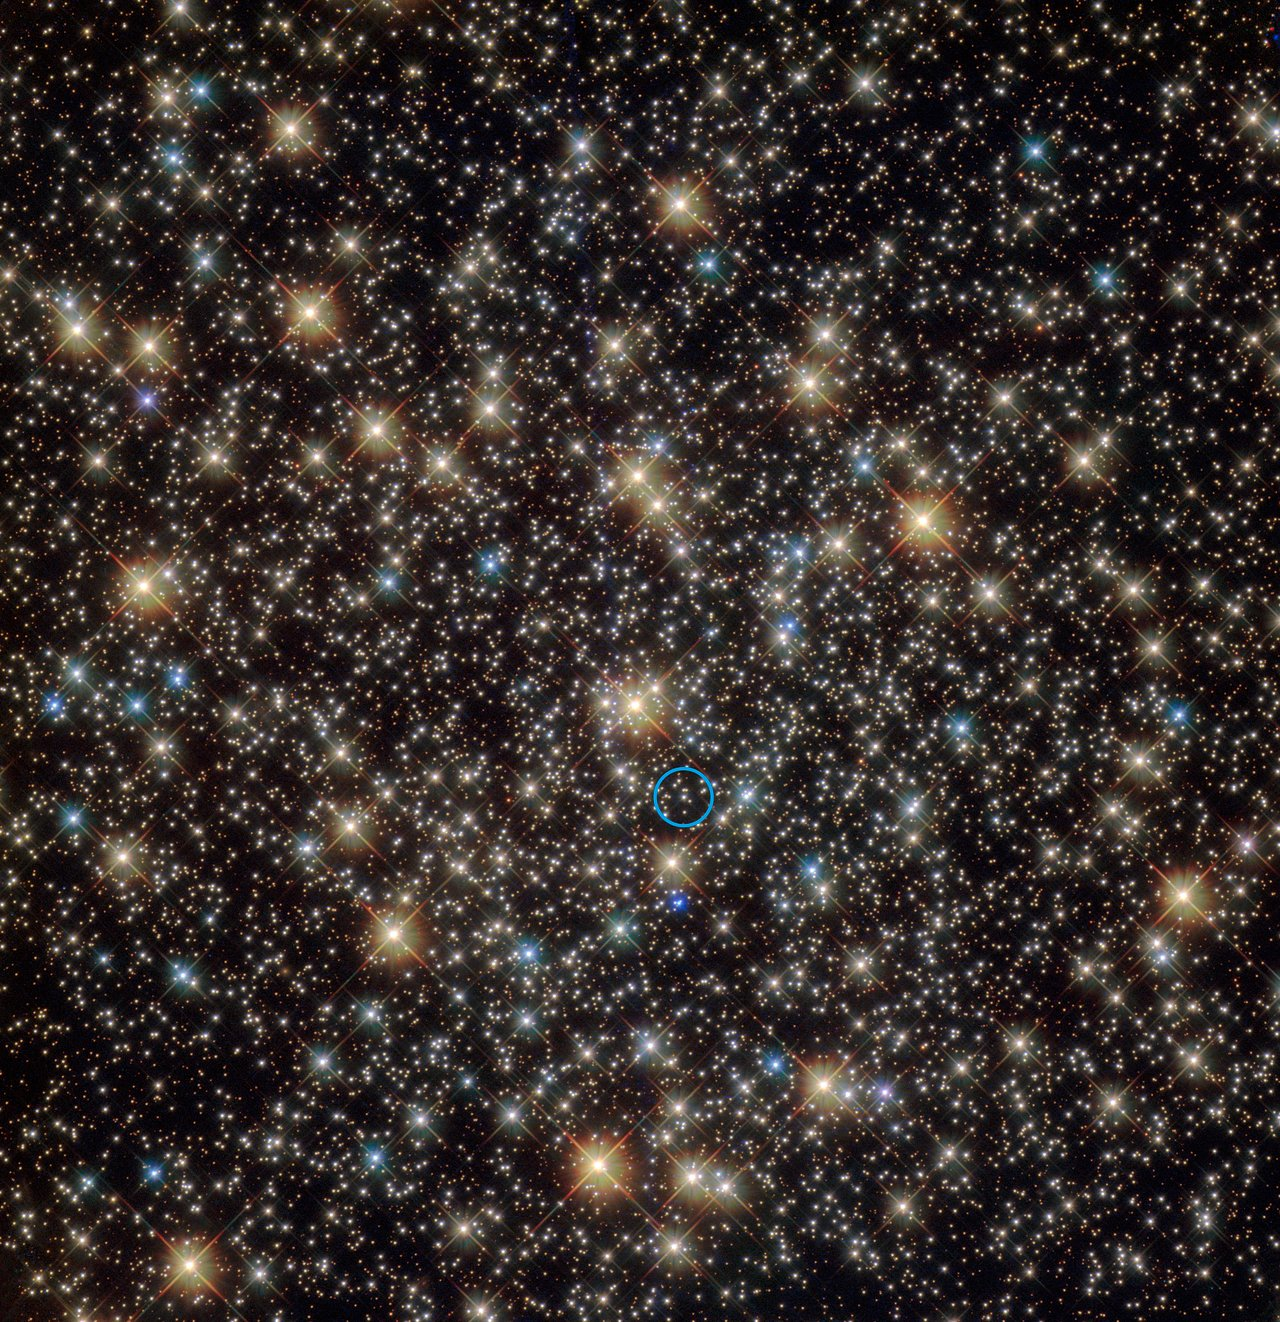 This image from the  NASA/ESA Hubble Space Telescope shows the central region of the rich globular star cluster NGC 3201 in the southern constellation of Vela (The Sails).  A star that has been found to be orbiting a black hole with four times the mass of the Sun is indicated with blue circle. - Image Credit: ESA/NASA